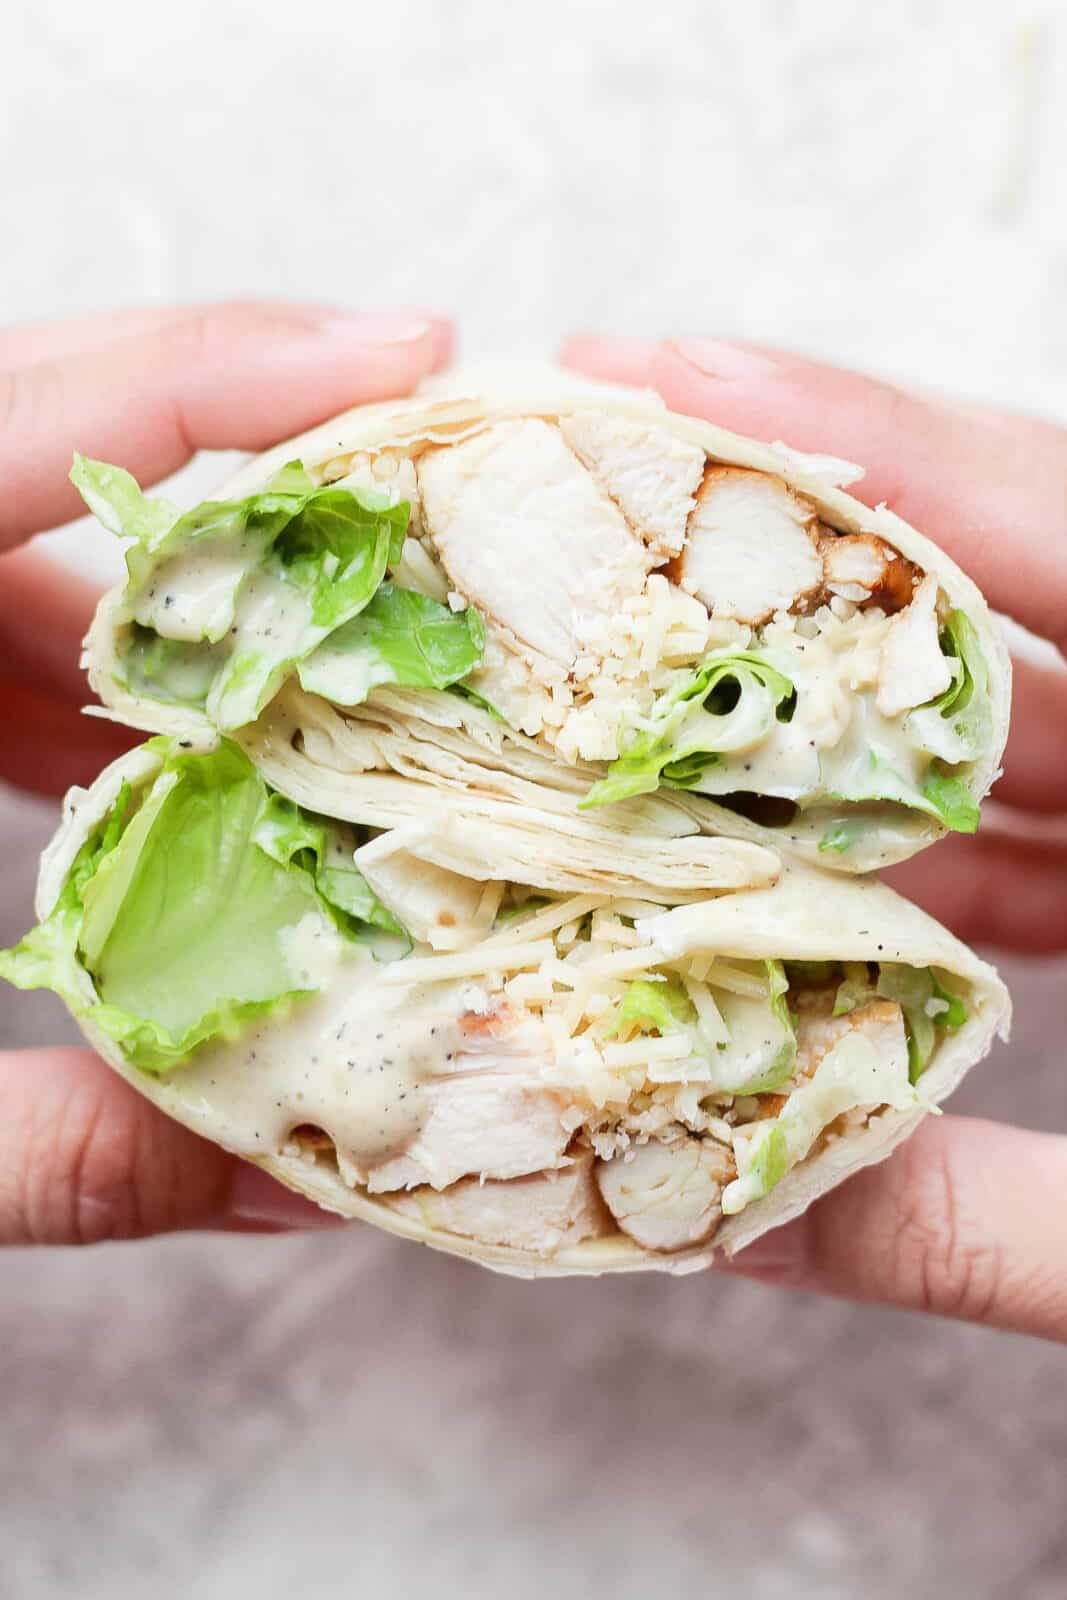 Hand holding a chicken caesar wrap that was cut open in the middle.